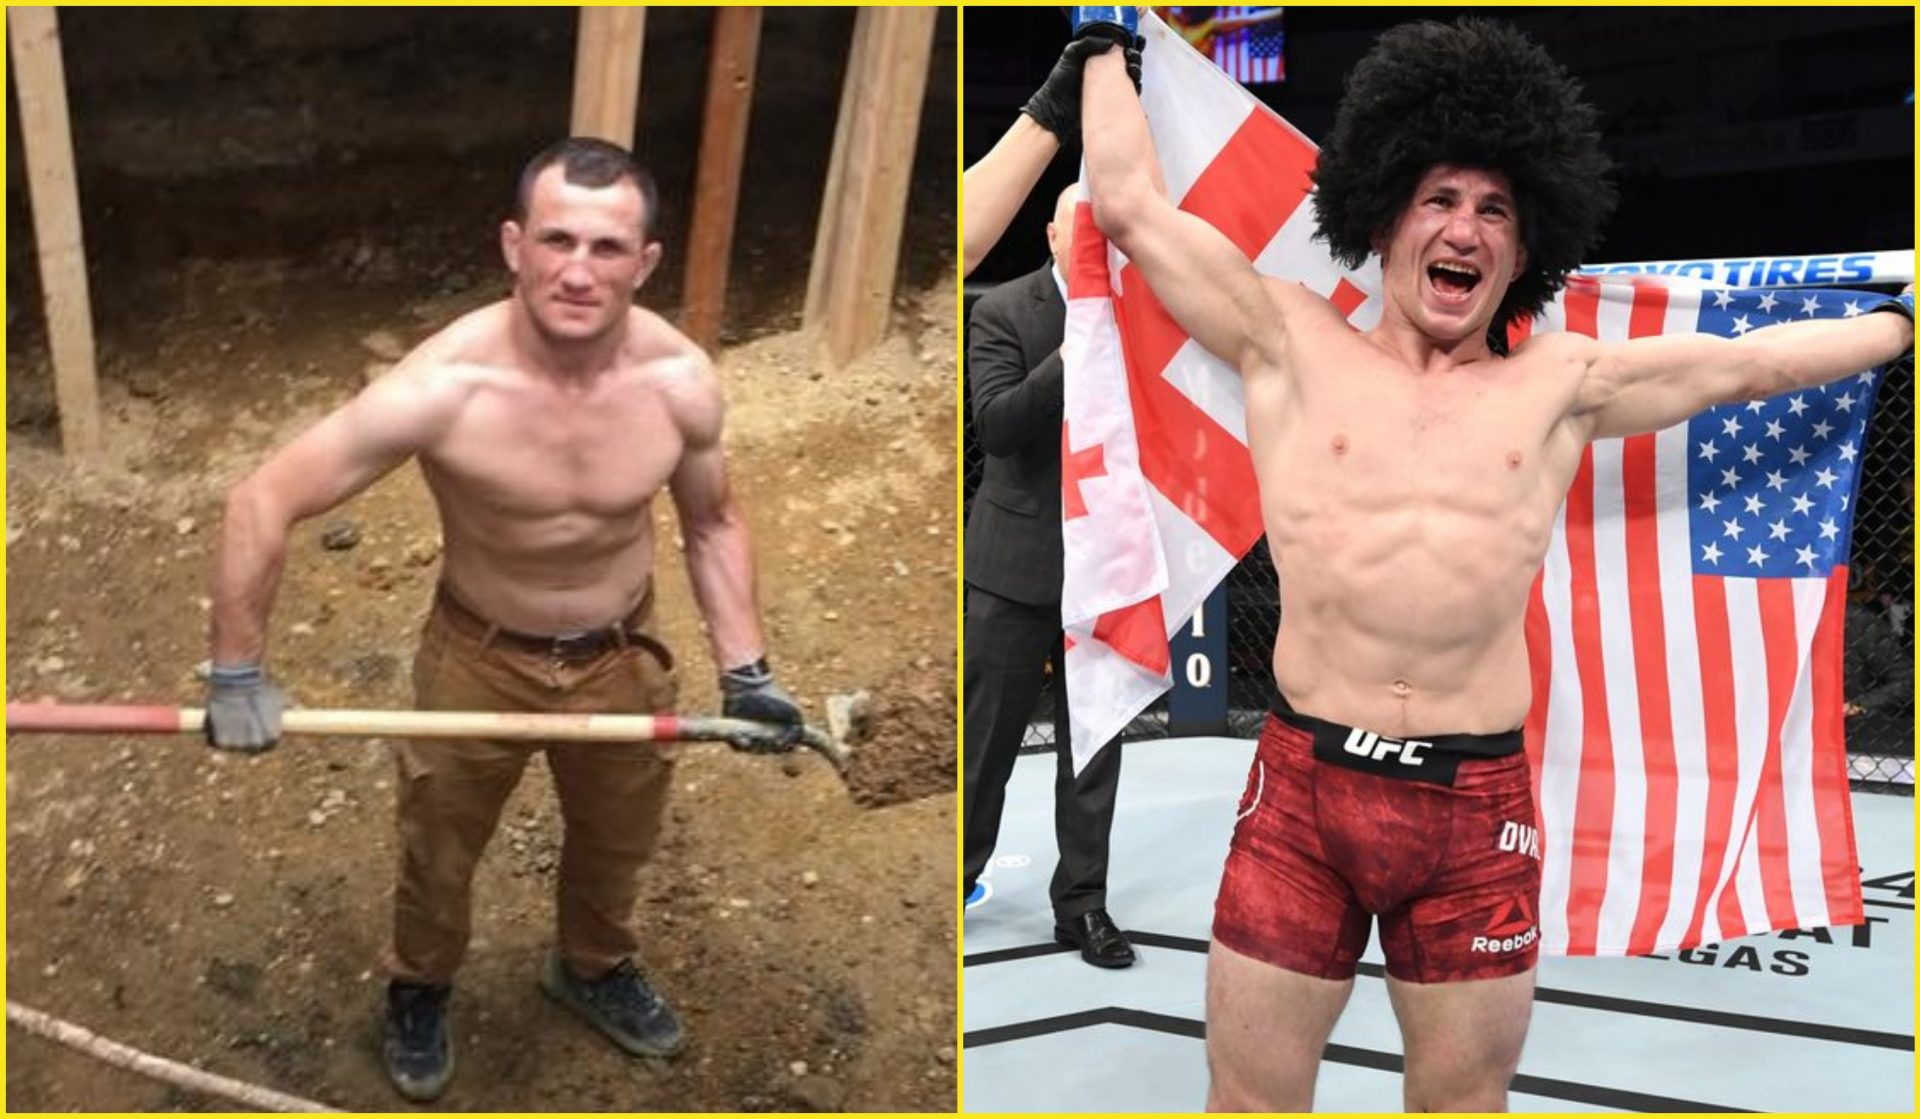 Merab Dvalishvili's journey from a construction worker to a top UFC contender - Merab